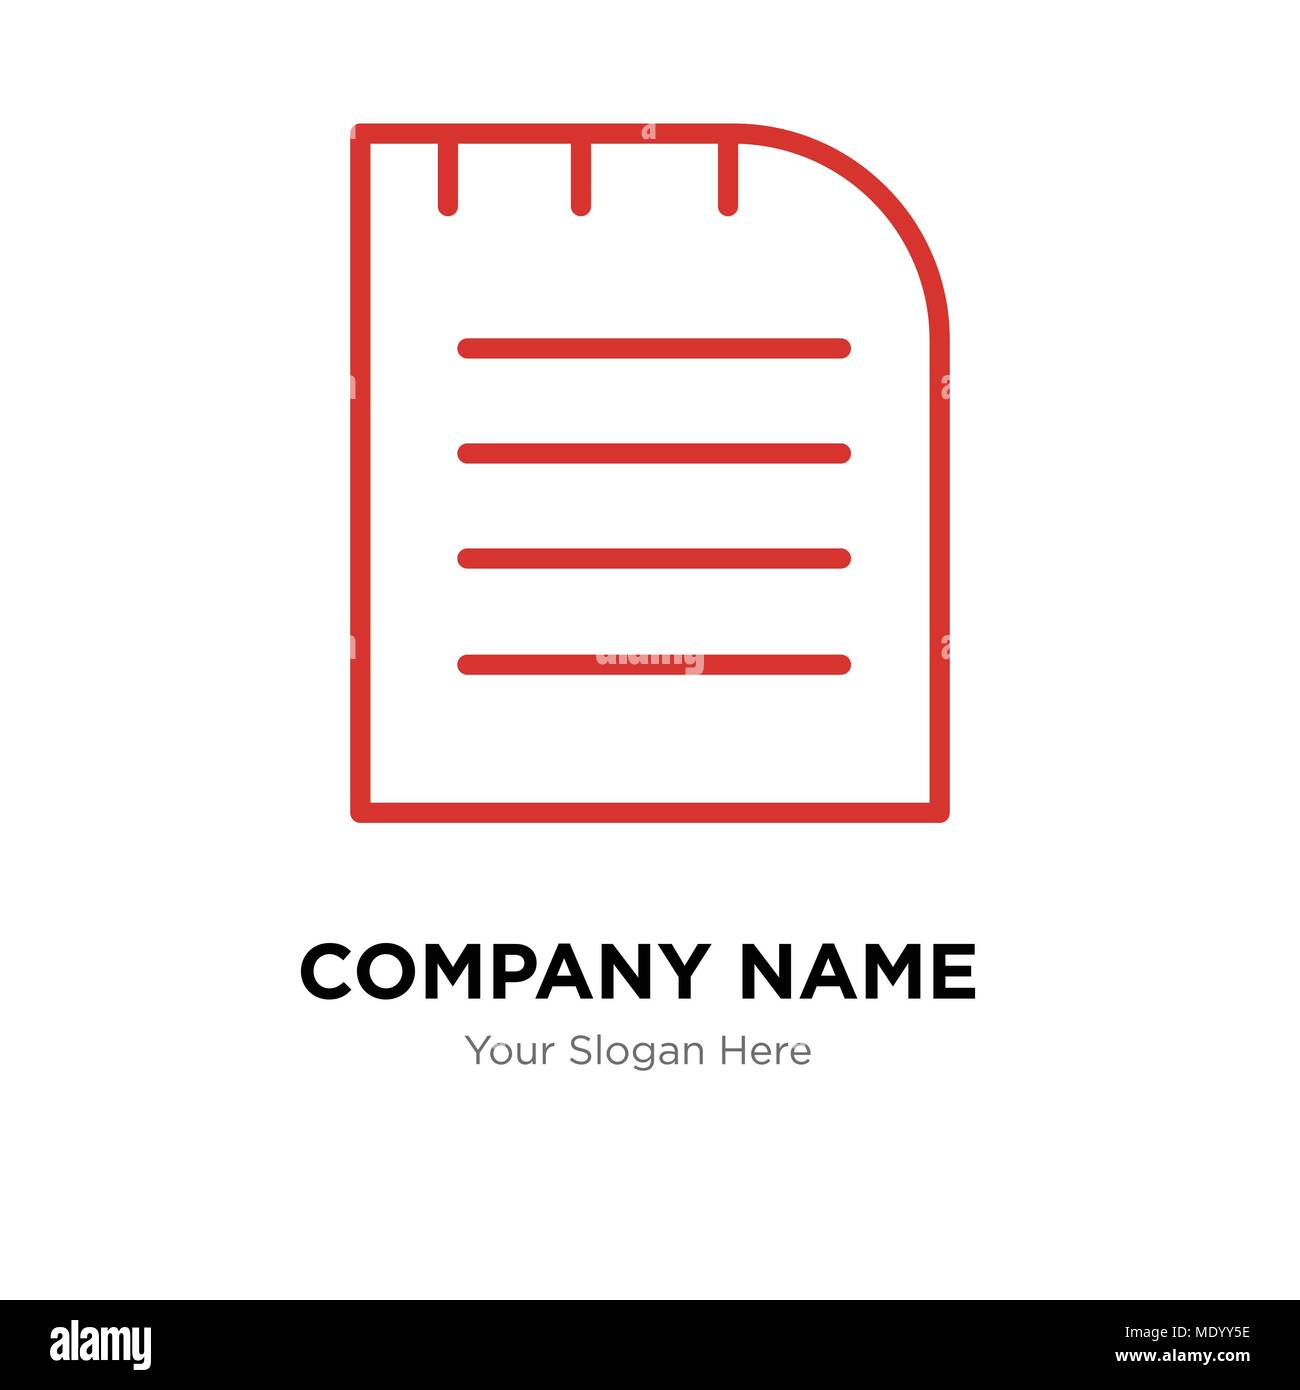 Notebook company logo design template business corporate vector notebook company logo design template business corporate vector icon maxwellsz